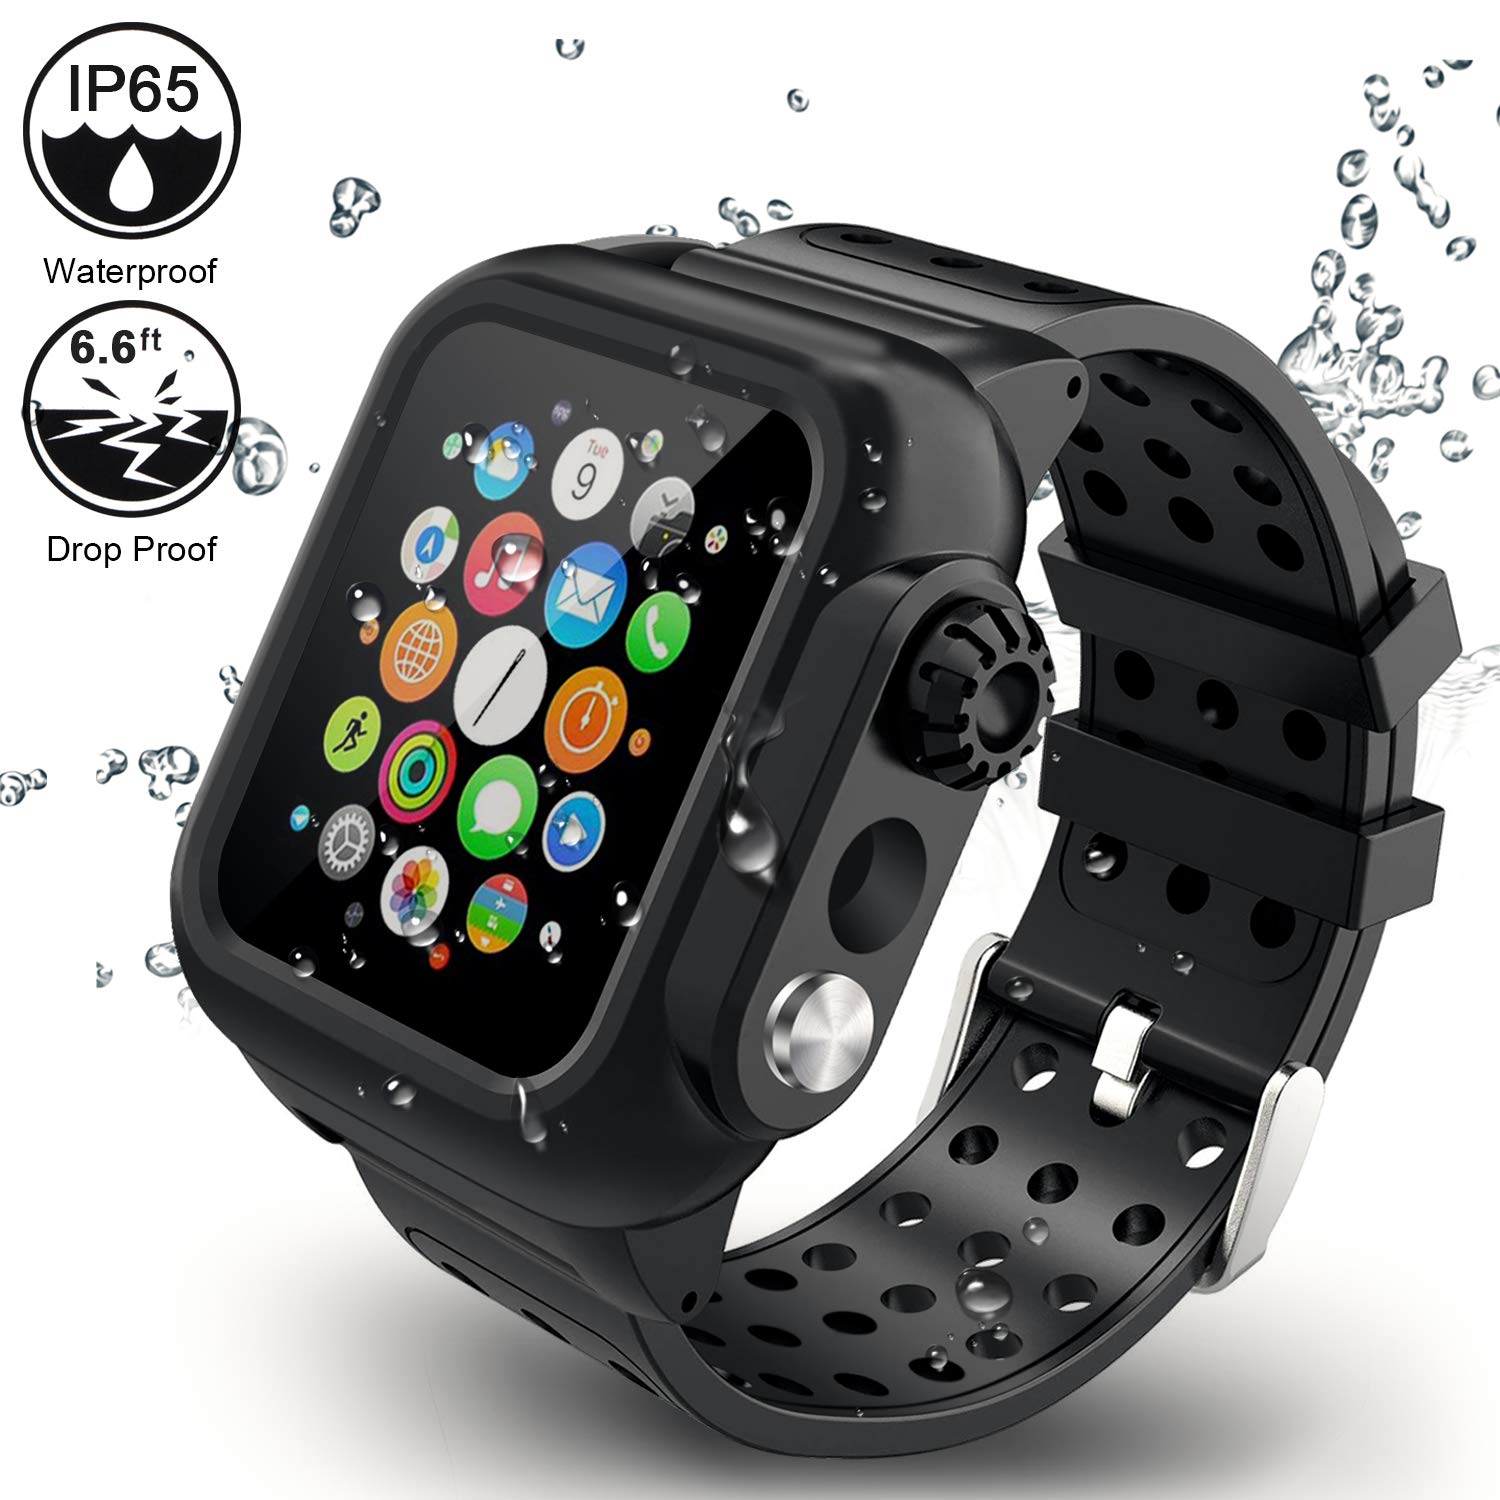 Apple Watch Band With Case 44mm Series 4 5 3 In 1 Waterproof Screen Protector Ebay